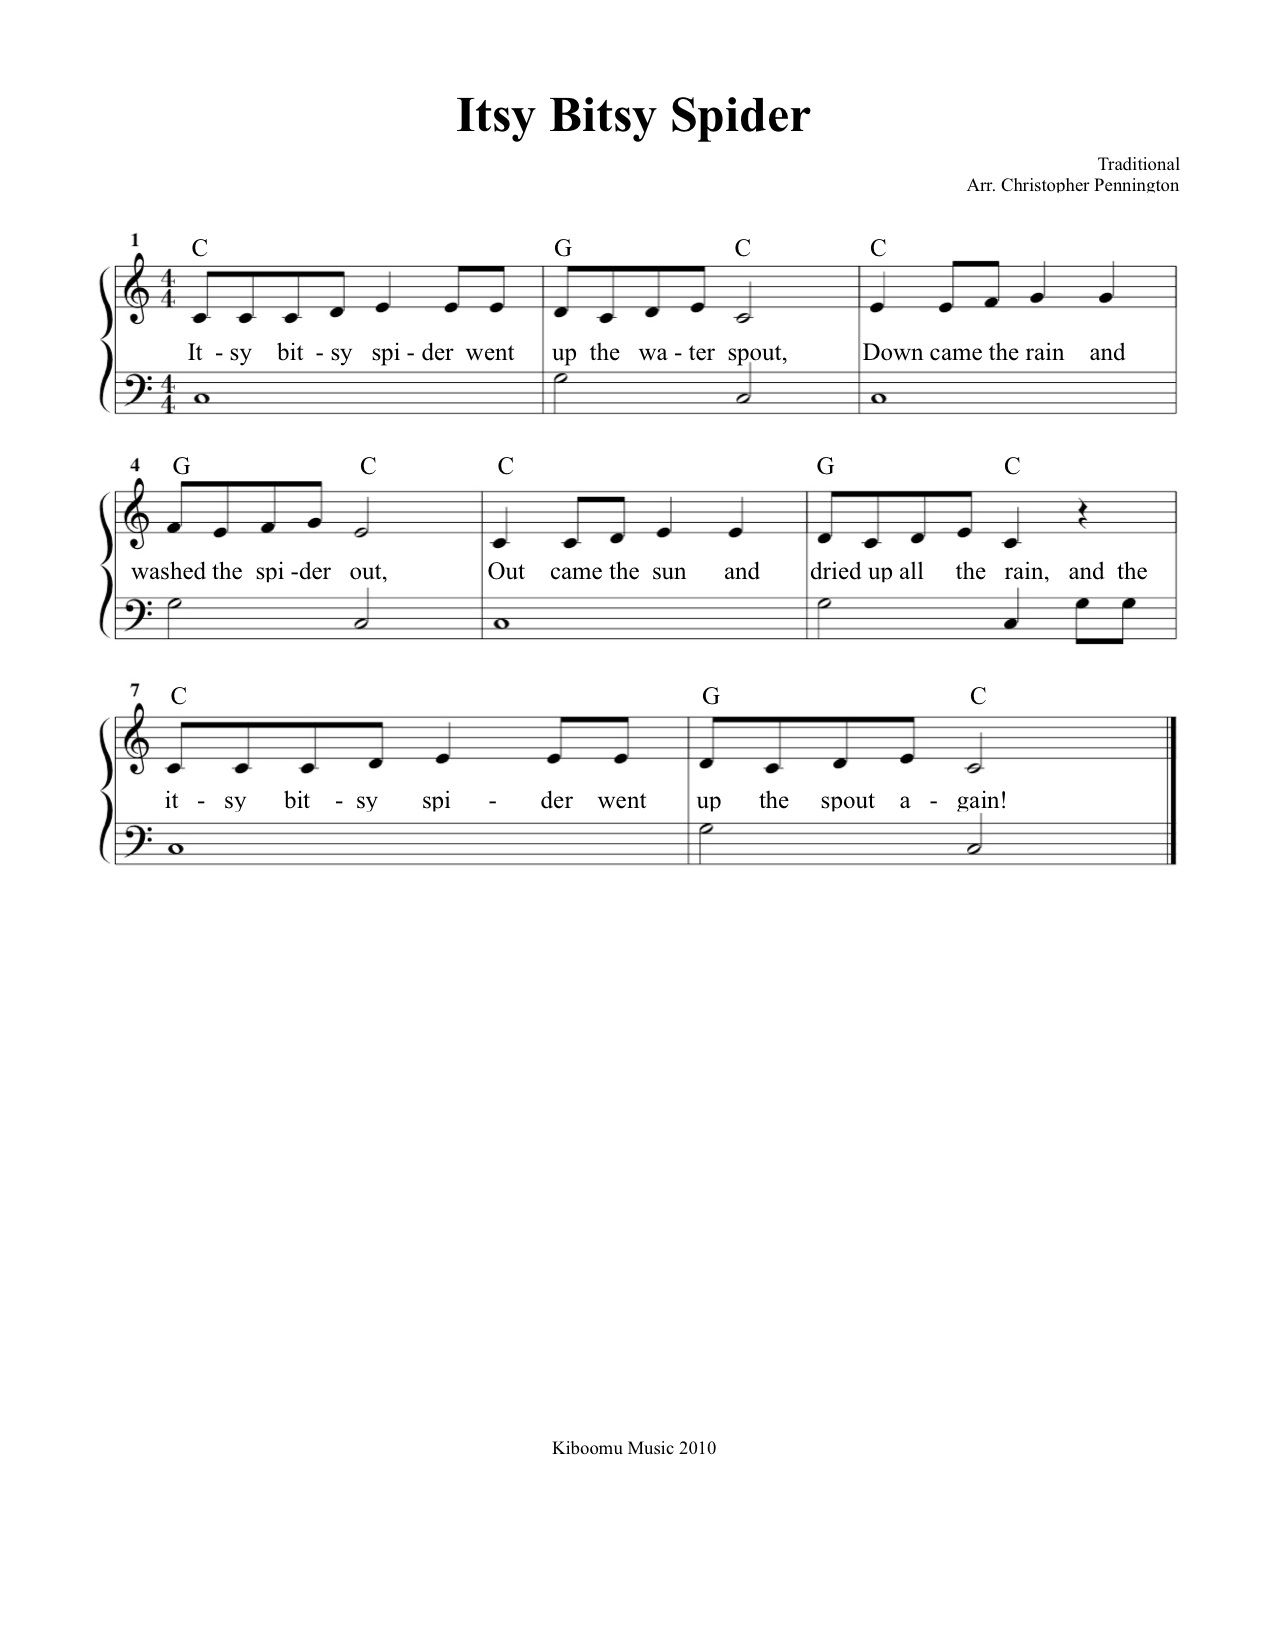 Free Sheet Music Itsy Bitsy Spider Sheet Music And Song For Kids